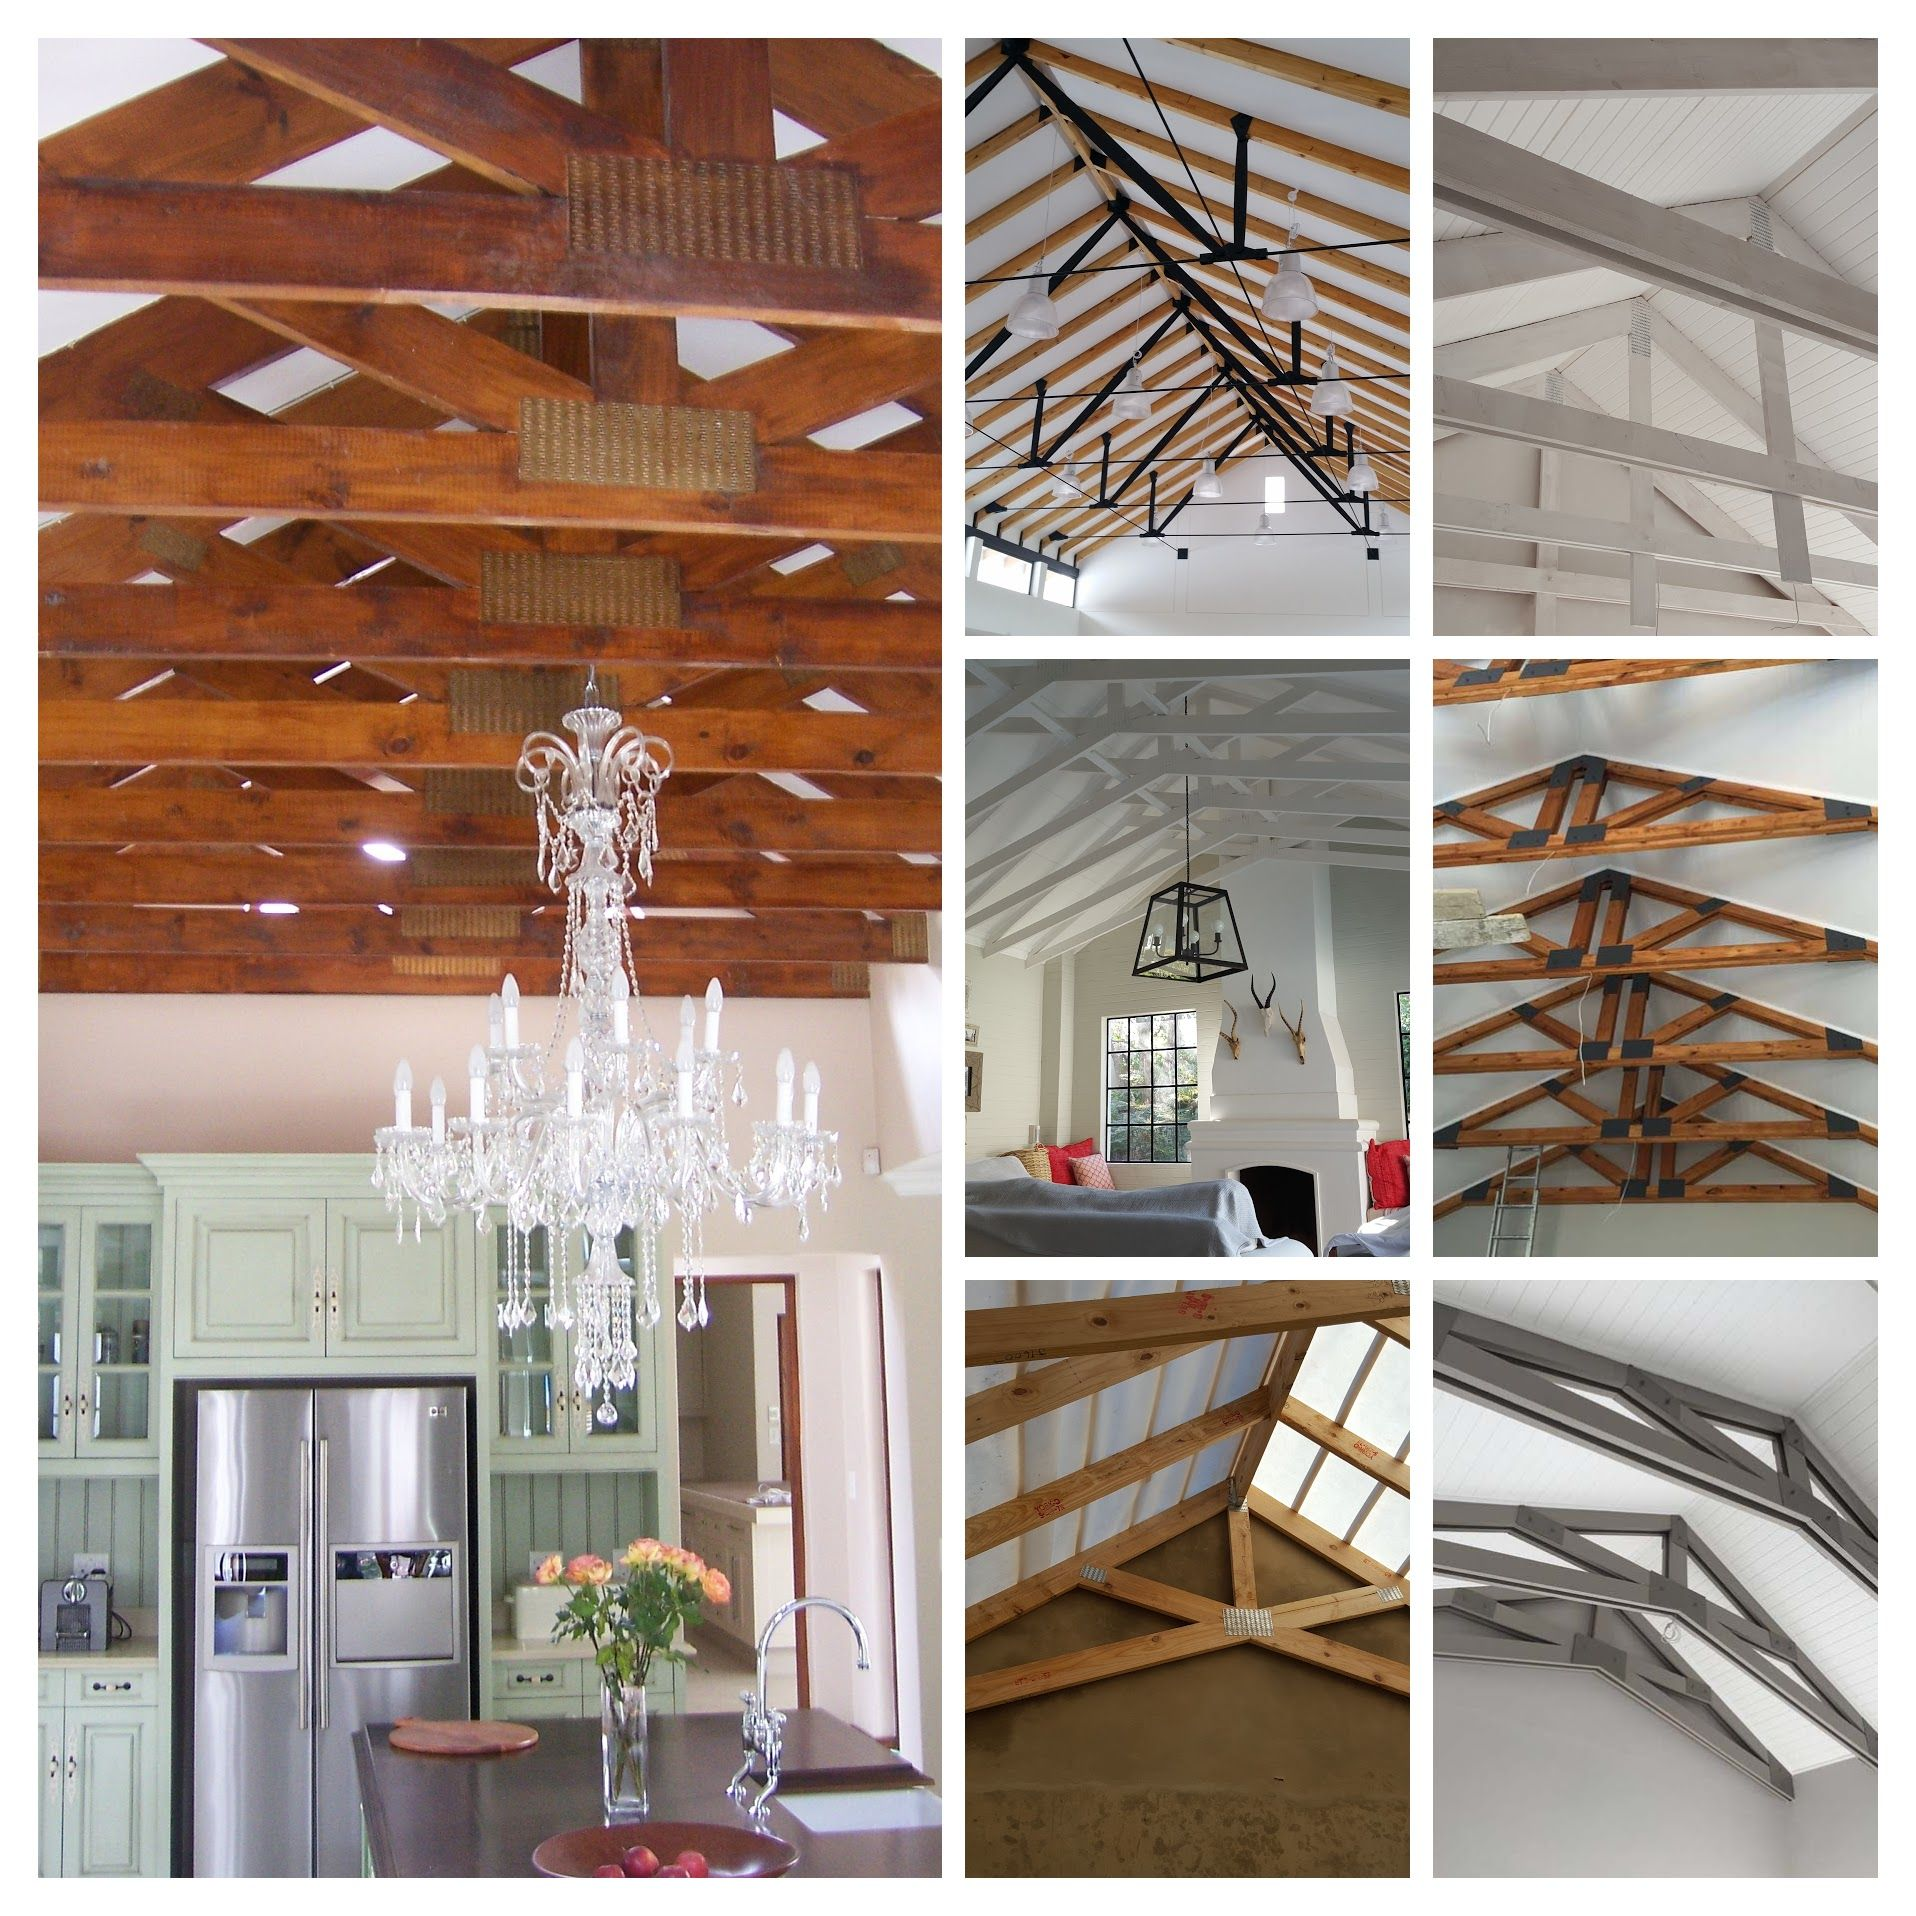 Exposed Roof Trusses Designed To Support And To Be Seen